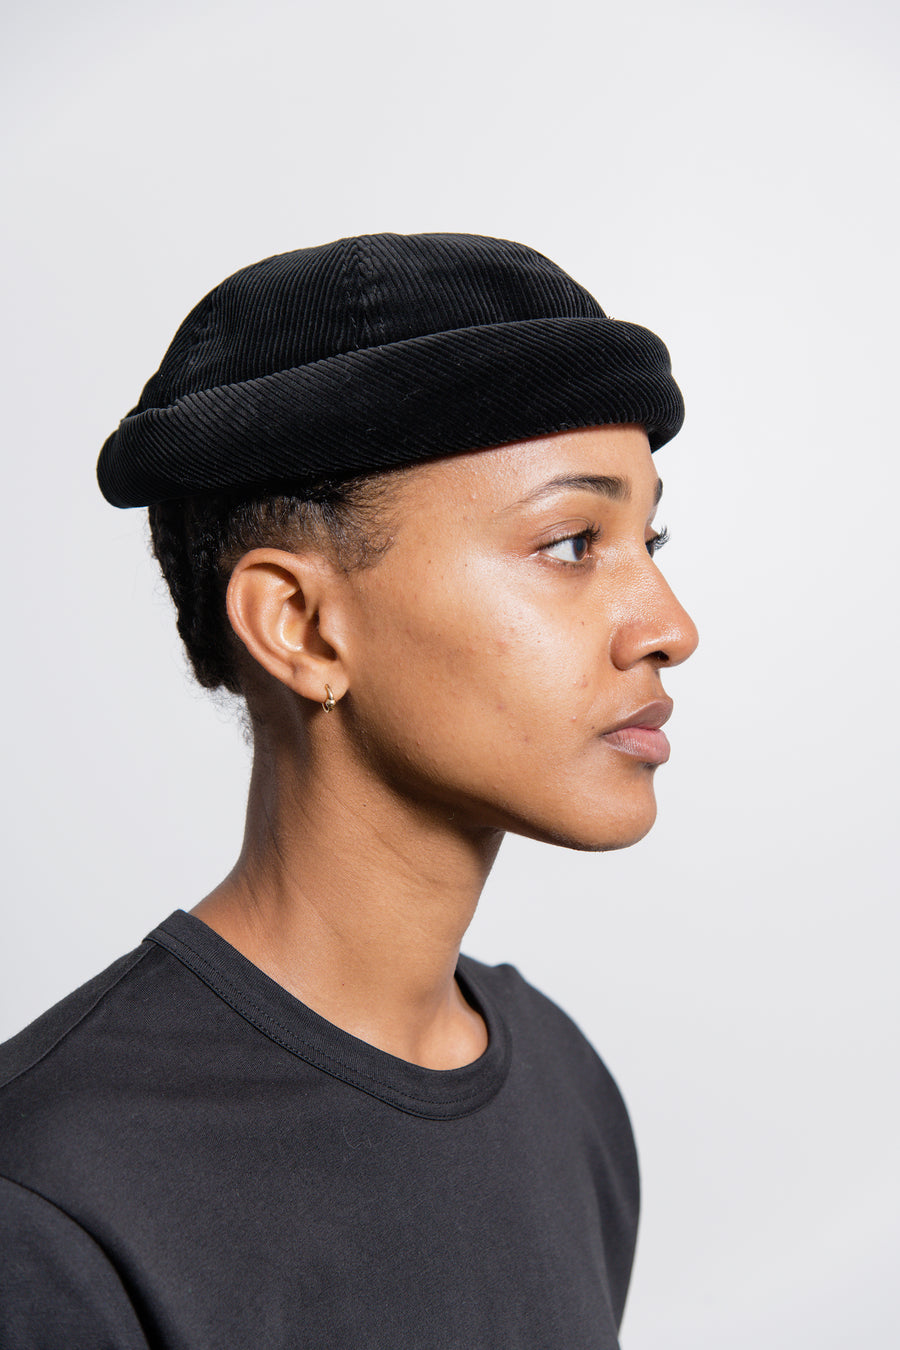 Cotton Corduroy Beton Cire Hat Black